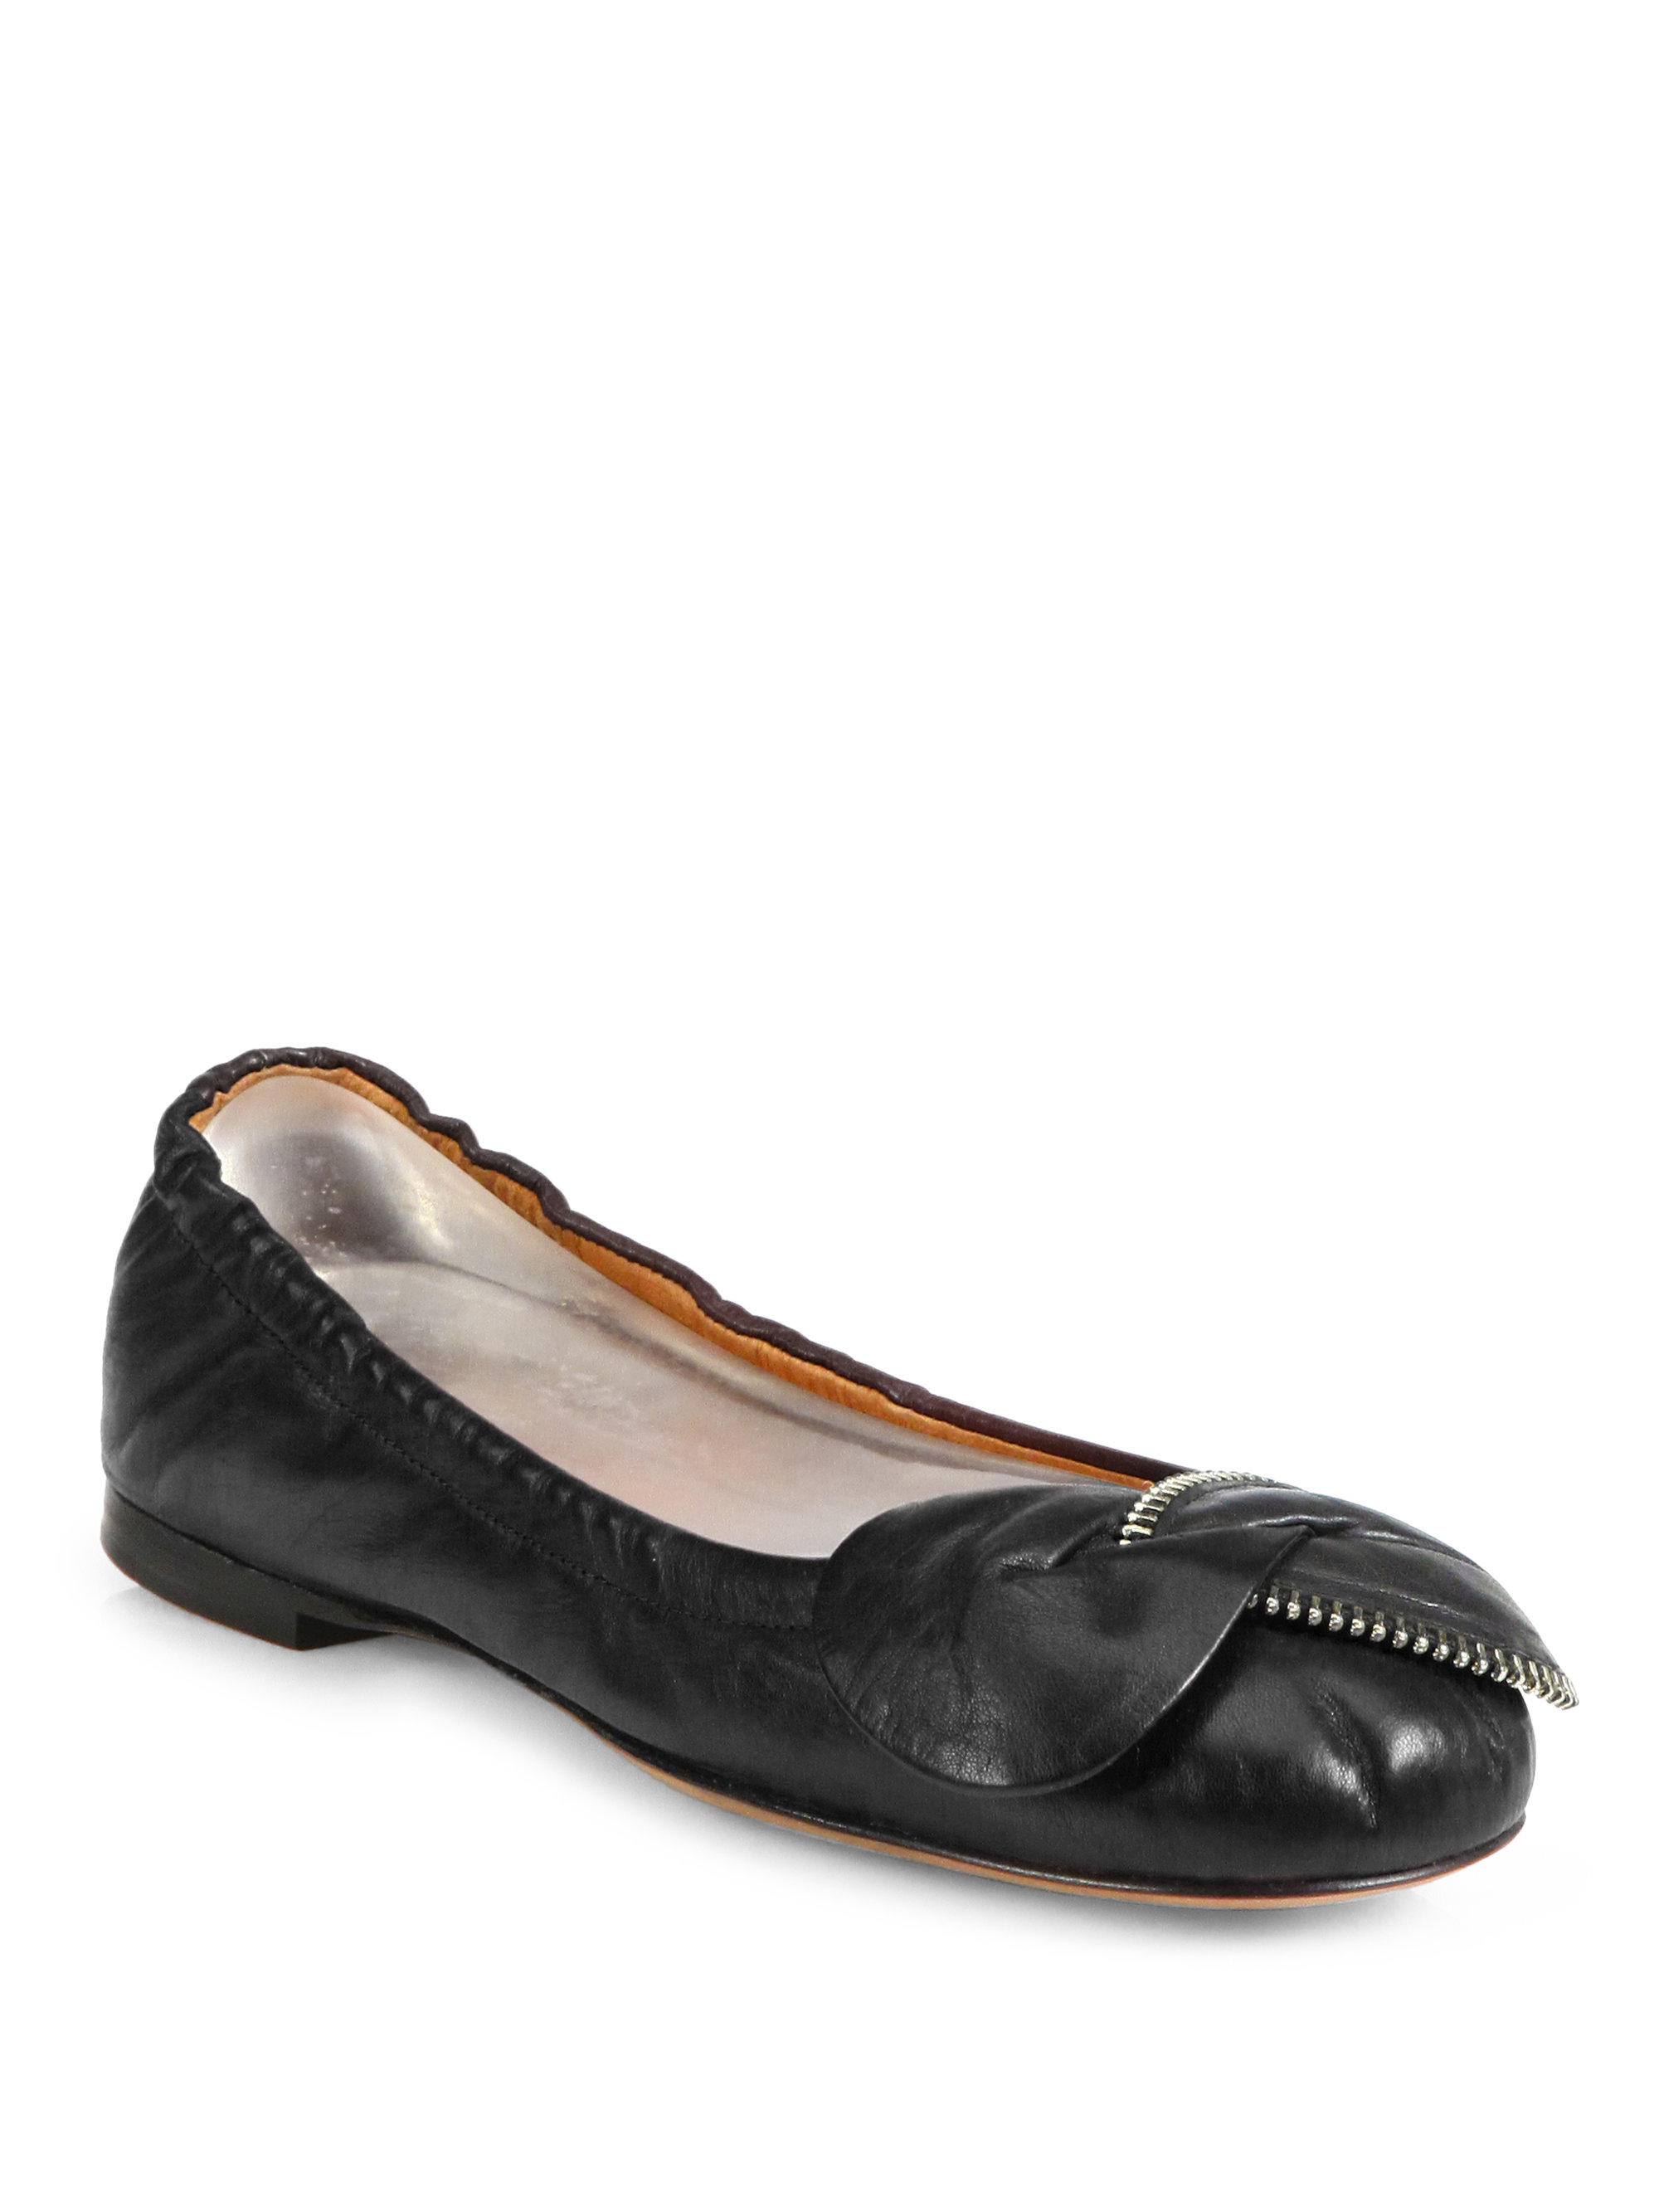 see by chlo clara leather zippertrimmed ballet flats in. Black Bedroom Furniture Sets. Home Design Ideas